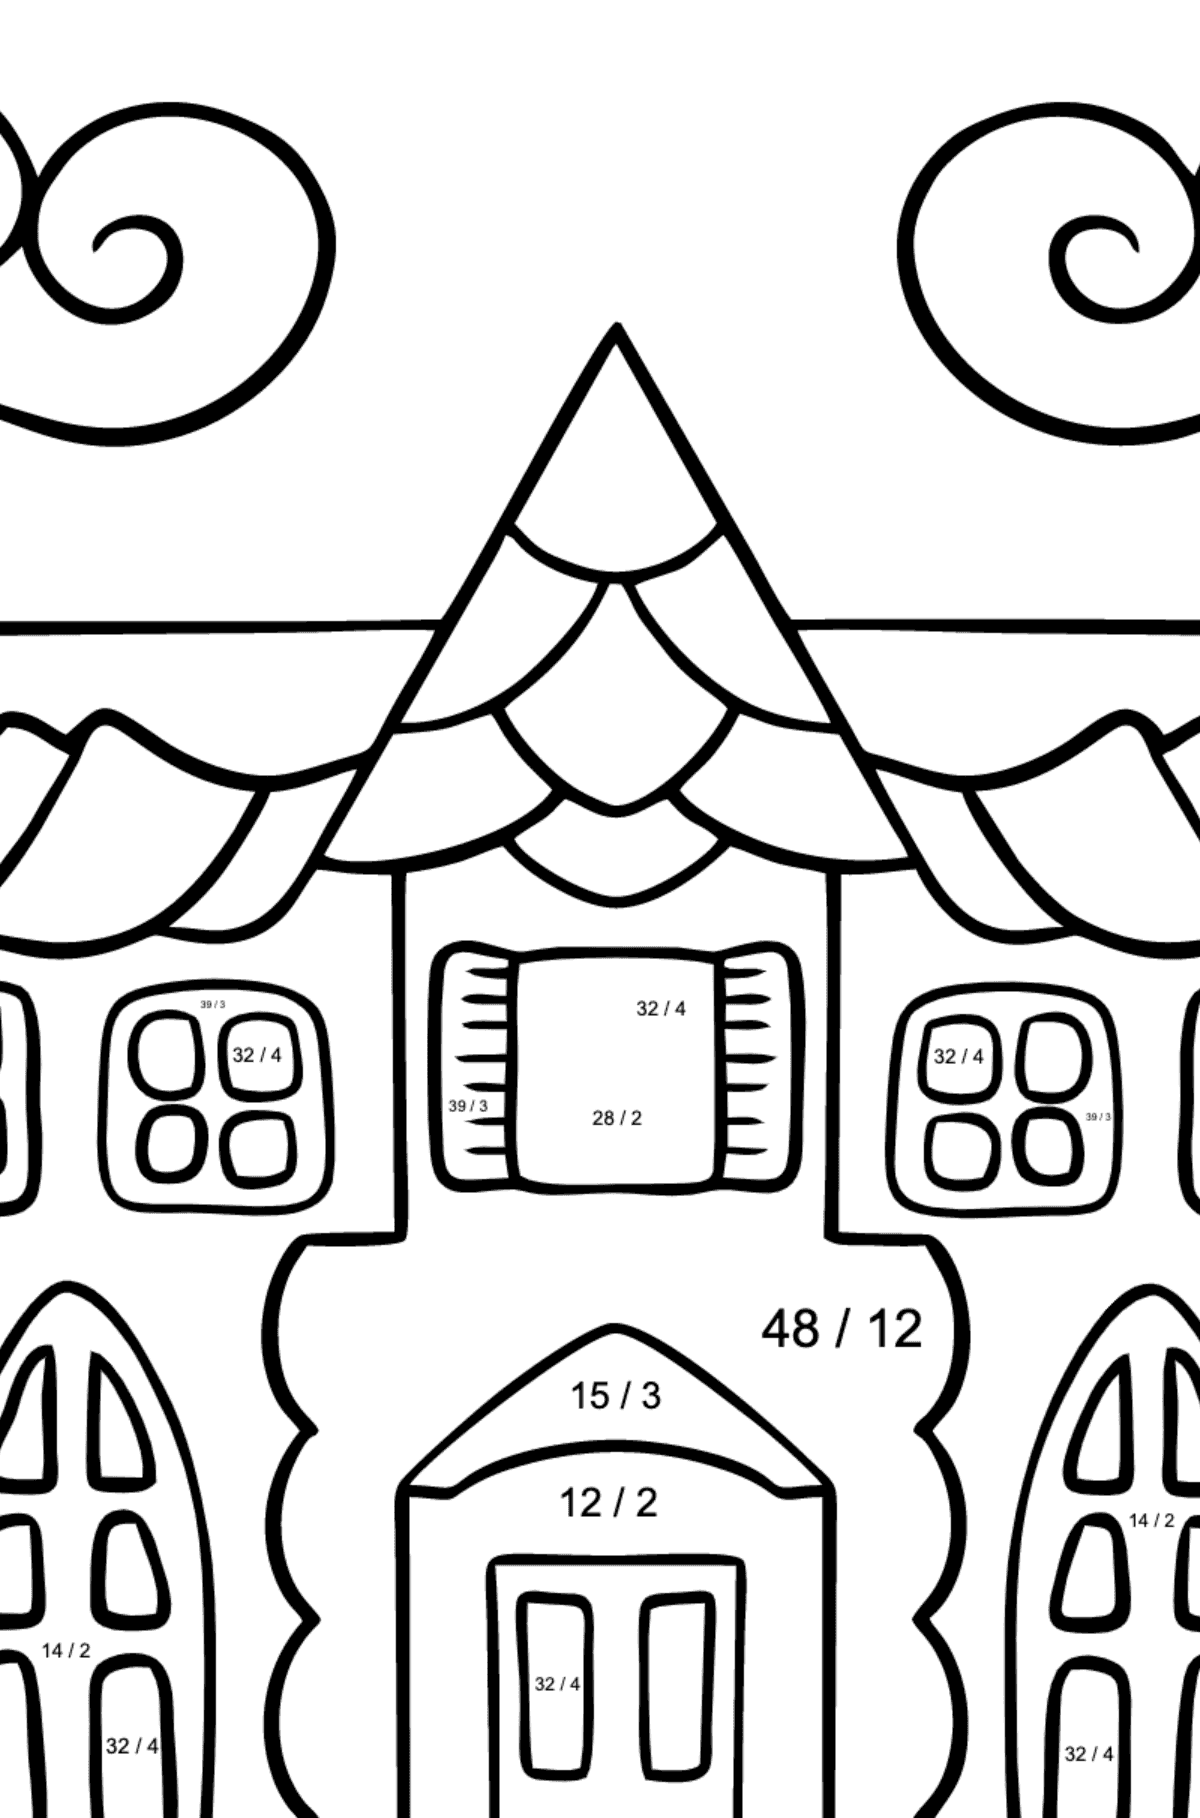 Coloring Page - A House in an Enchanted Kingdom for Children  - Color by Number Division